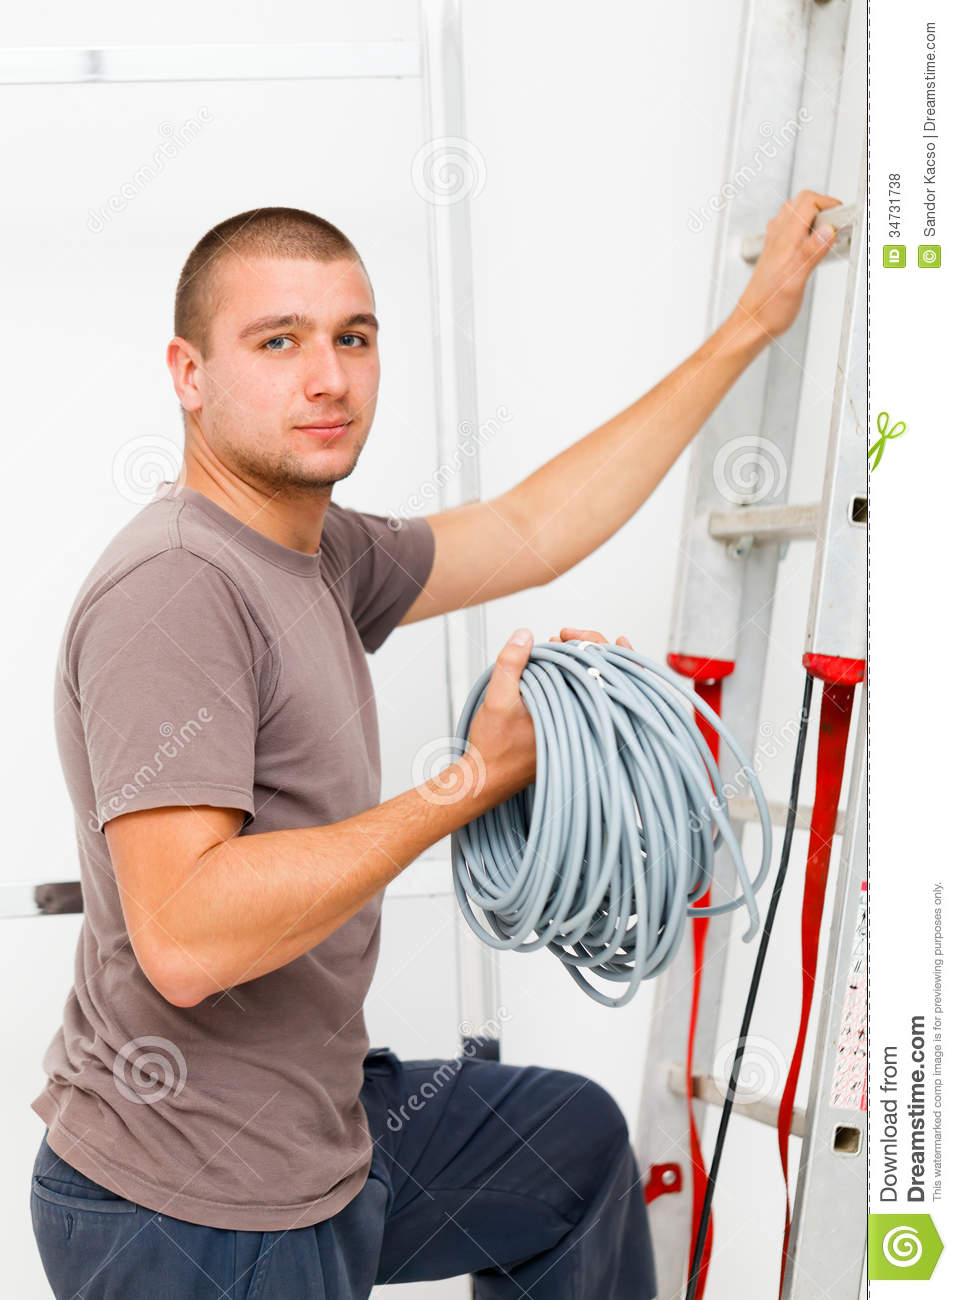 Electrician With Cords Royalty Free Stock Photos - Image: 34731738